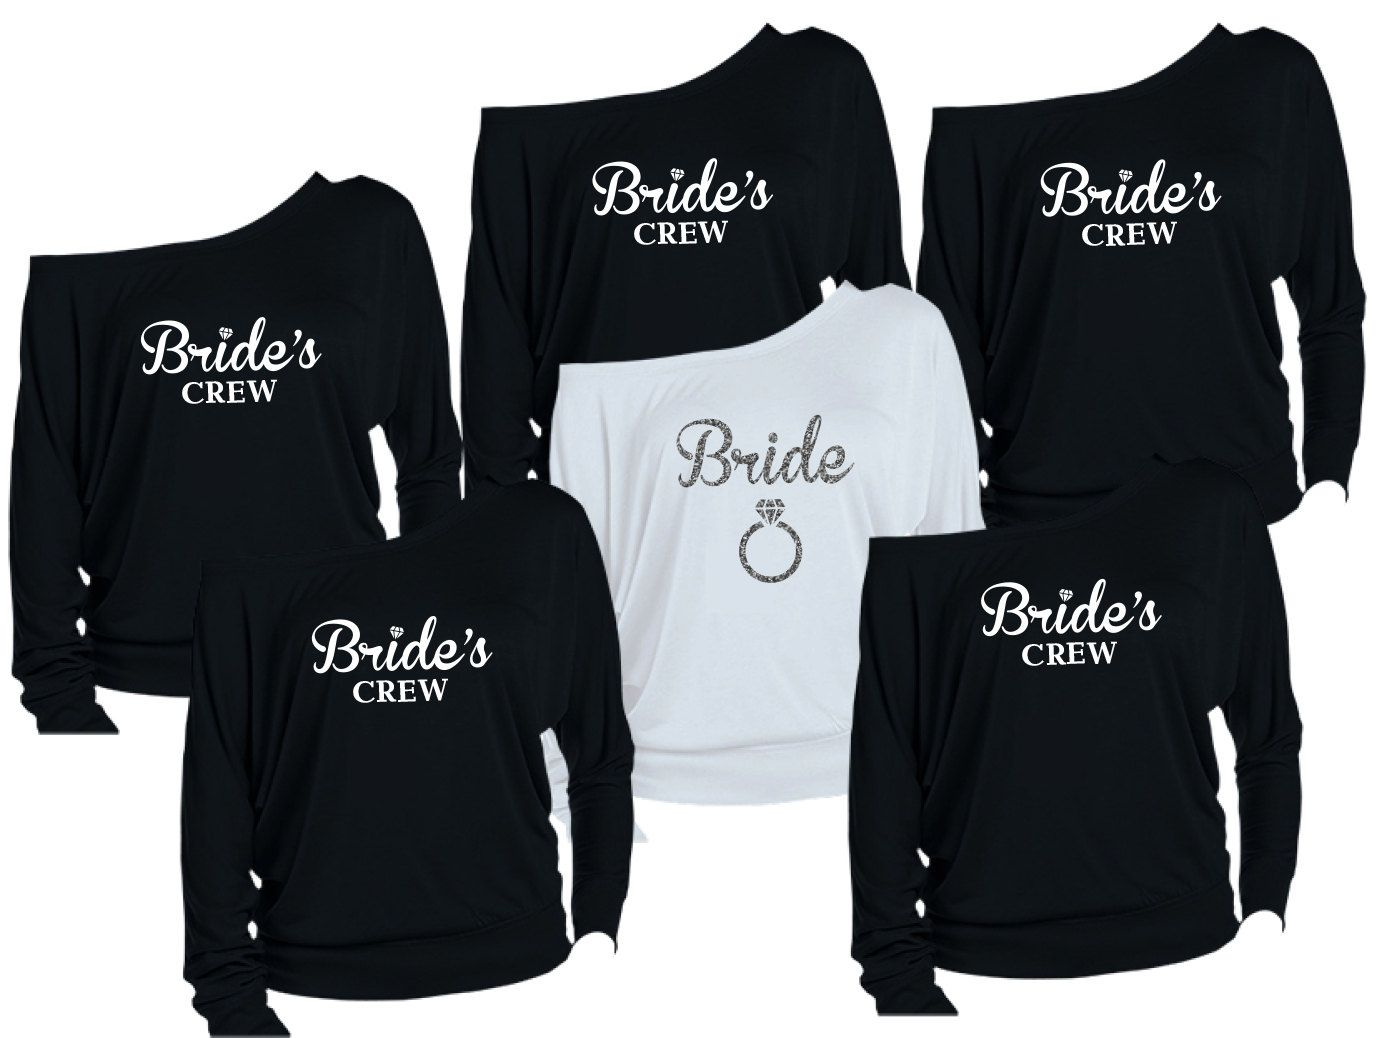 Like This But Definitely D I Y Route 8 Personalized Bridesmaids Shirts Brides Shirts By Hotbri Personalized Bride Bridesmaids Personalized Bridesmaid Shirts